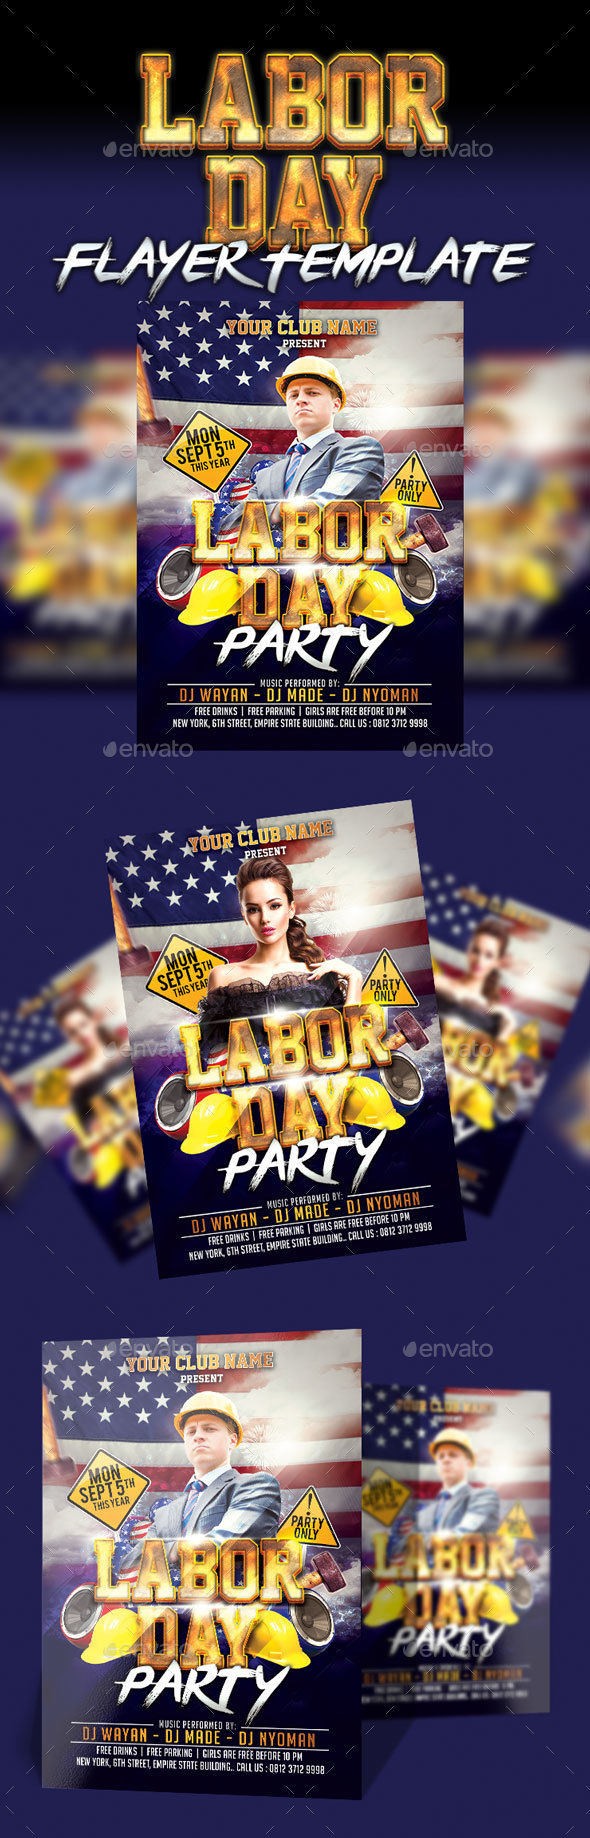 Labor Day Party Flyer by Eyestetix (Labor Day party flyer)